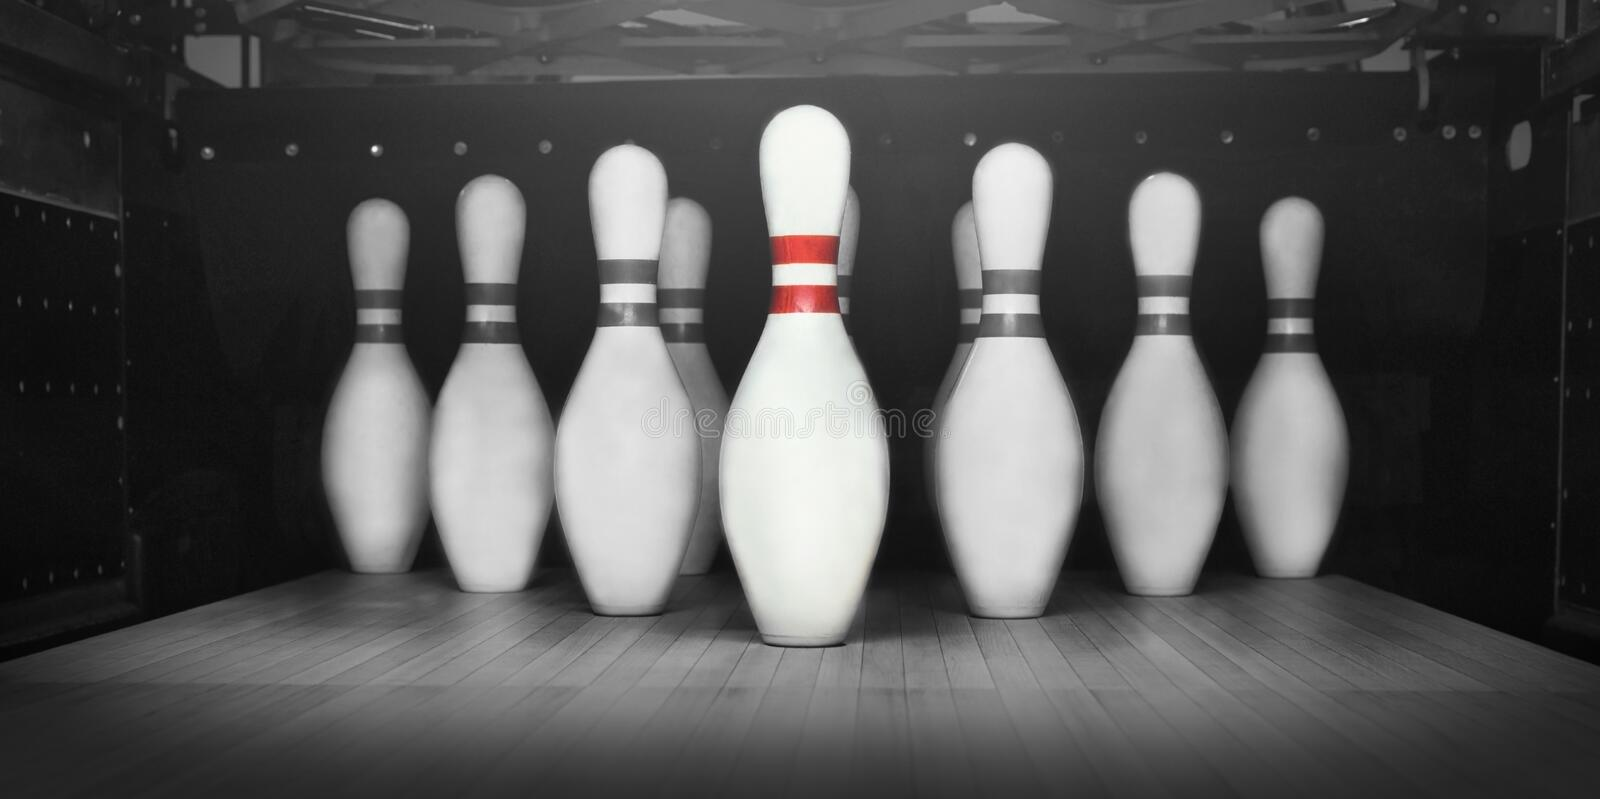 Team leader - one red bowling pin in front of others. Leadership concept - red bowling pin in front of black and white stock photo